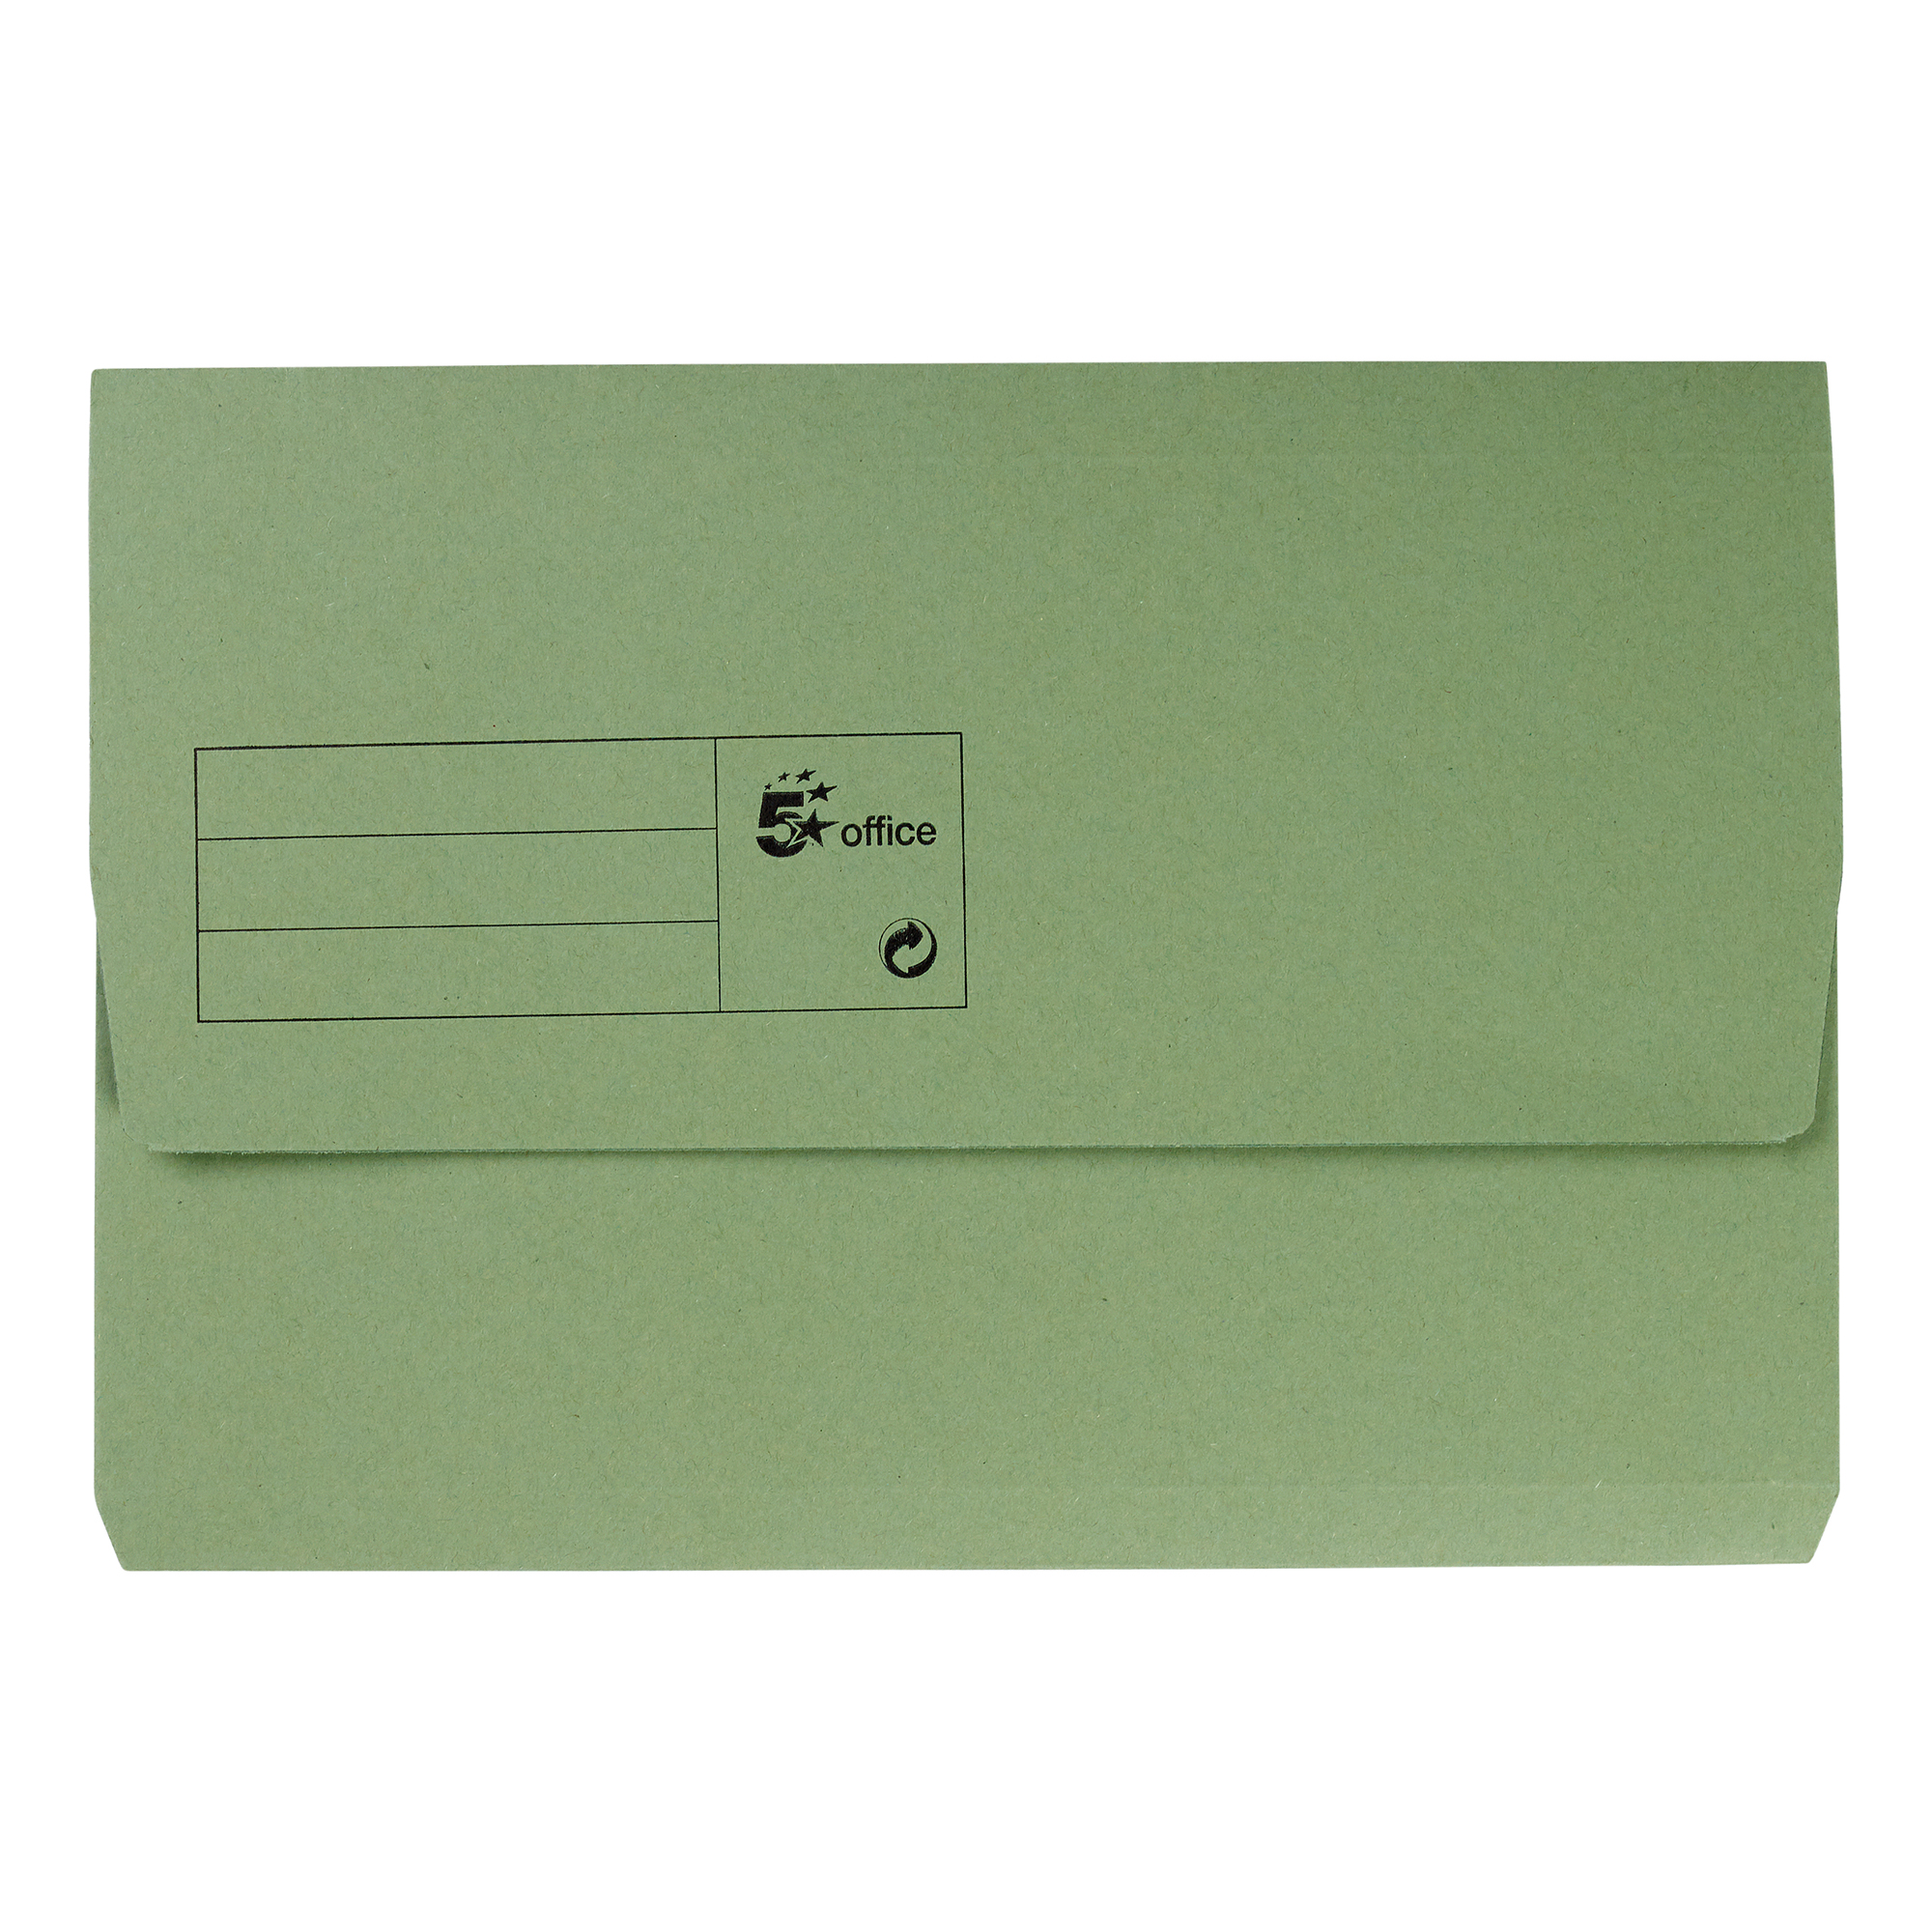 5 Star Office Document Wallet Half Flap 285gsm Recycled Capacity 32mm Foolscap Green Pack 50